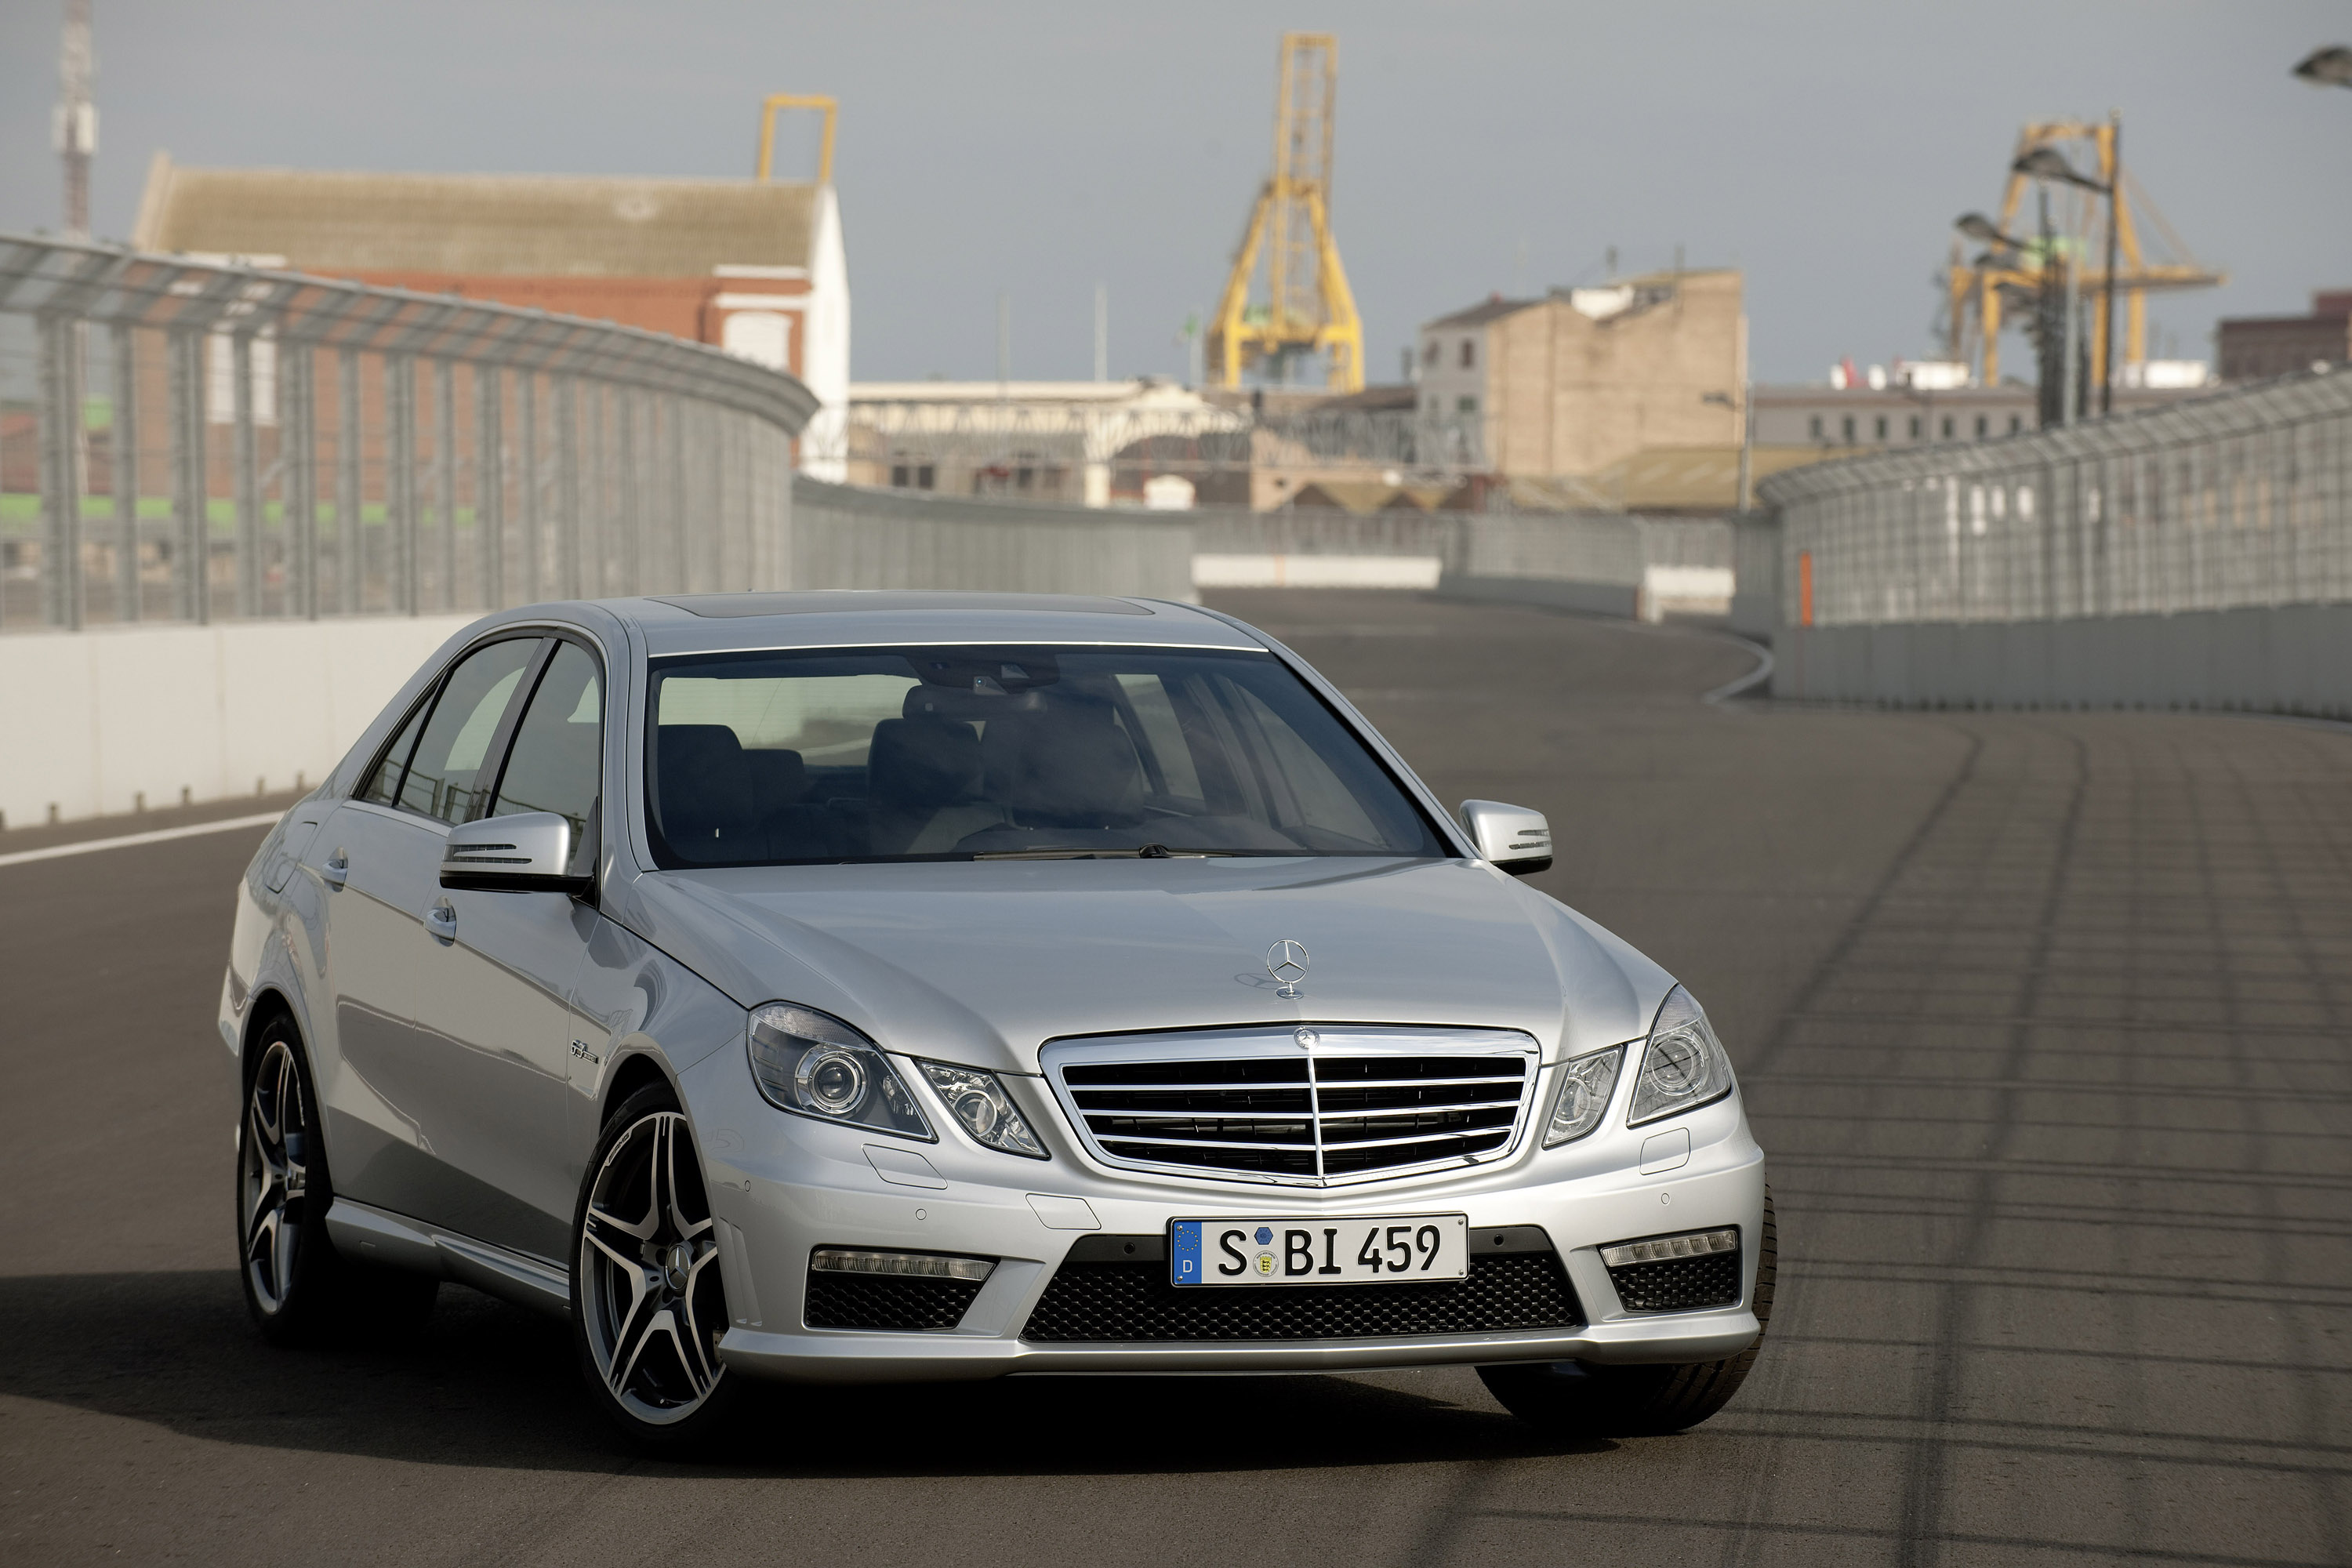 Mercedes Benz E63 AMG Saloon Picture